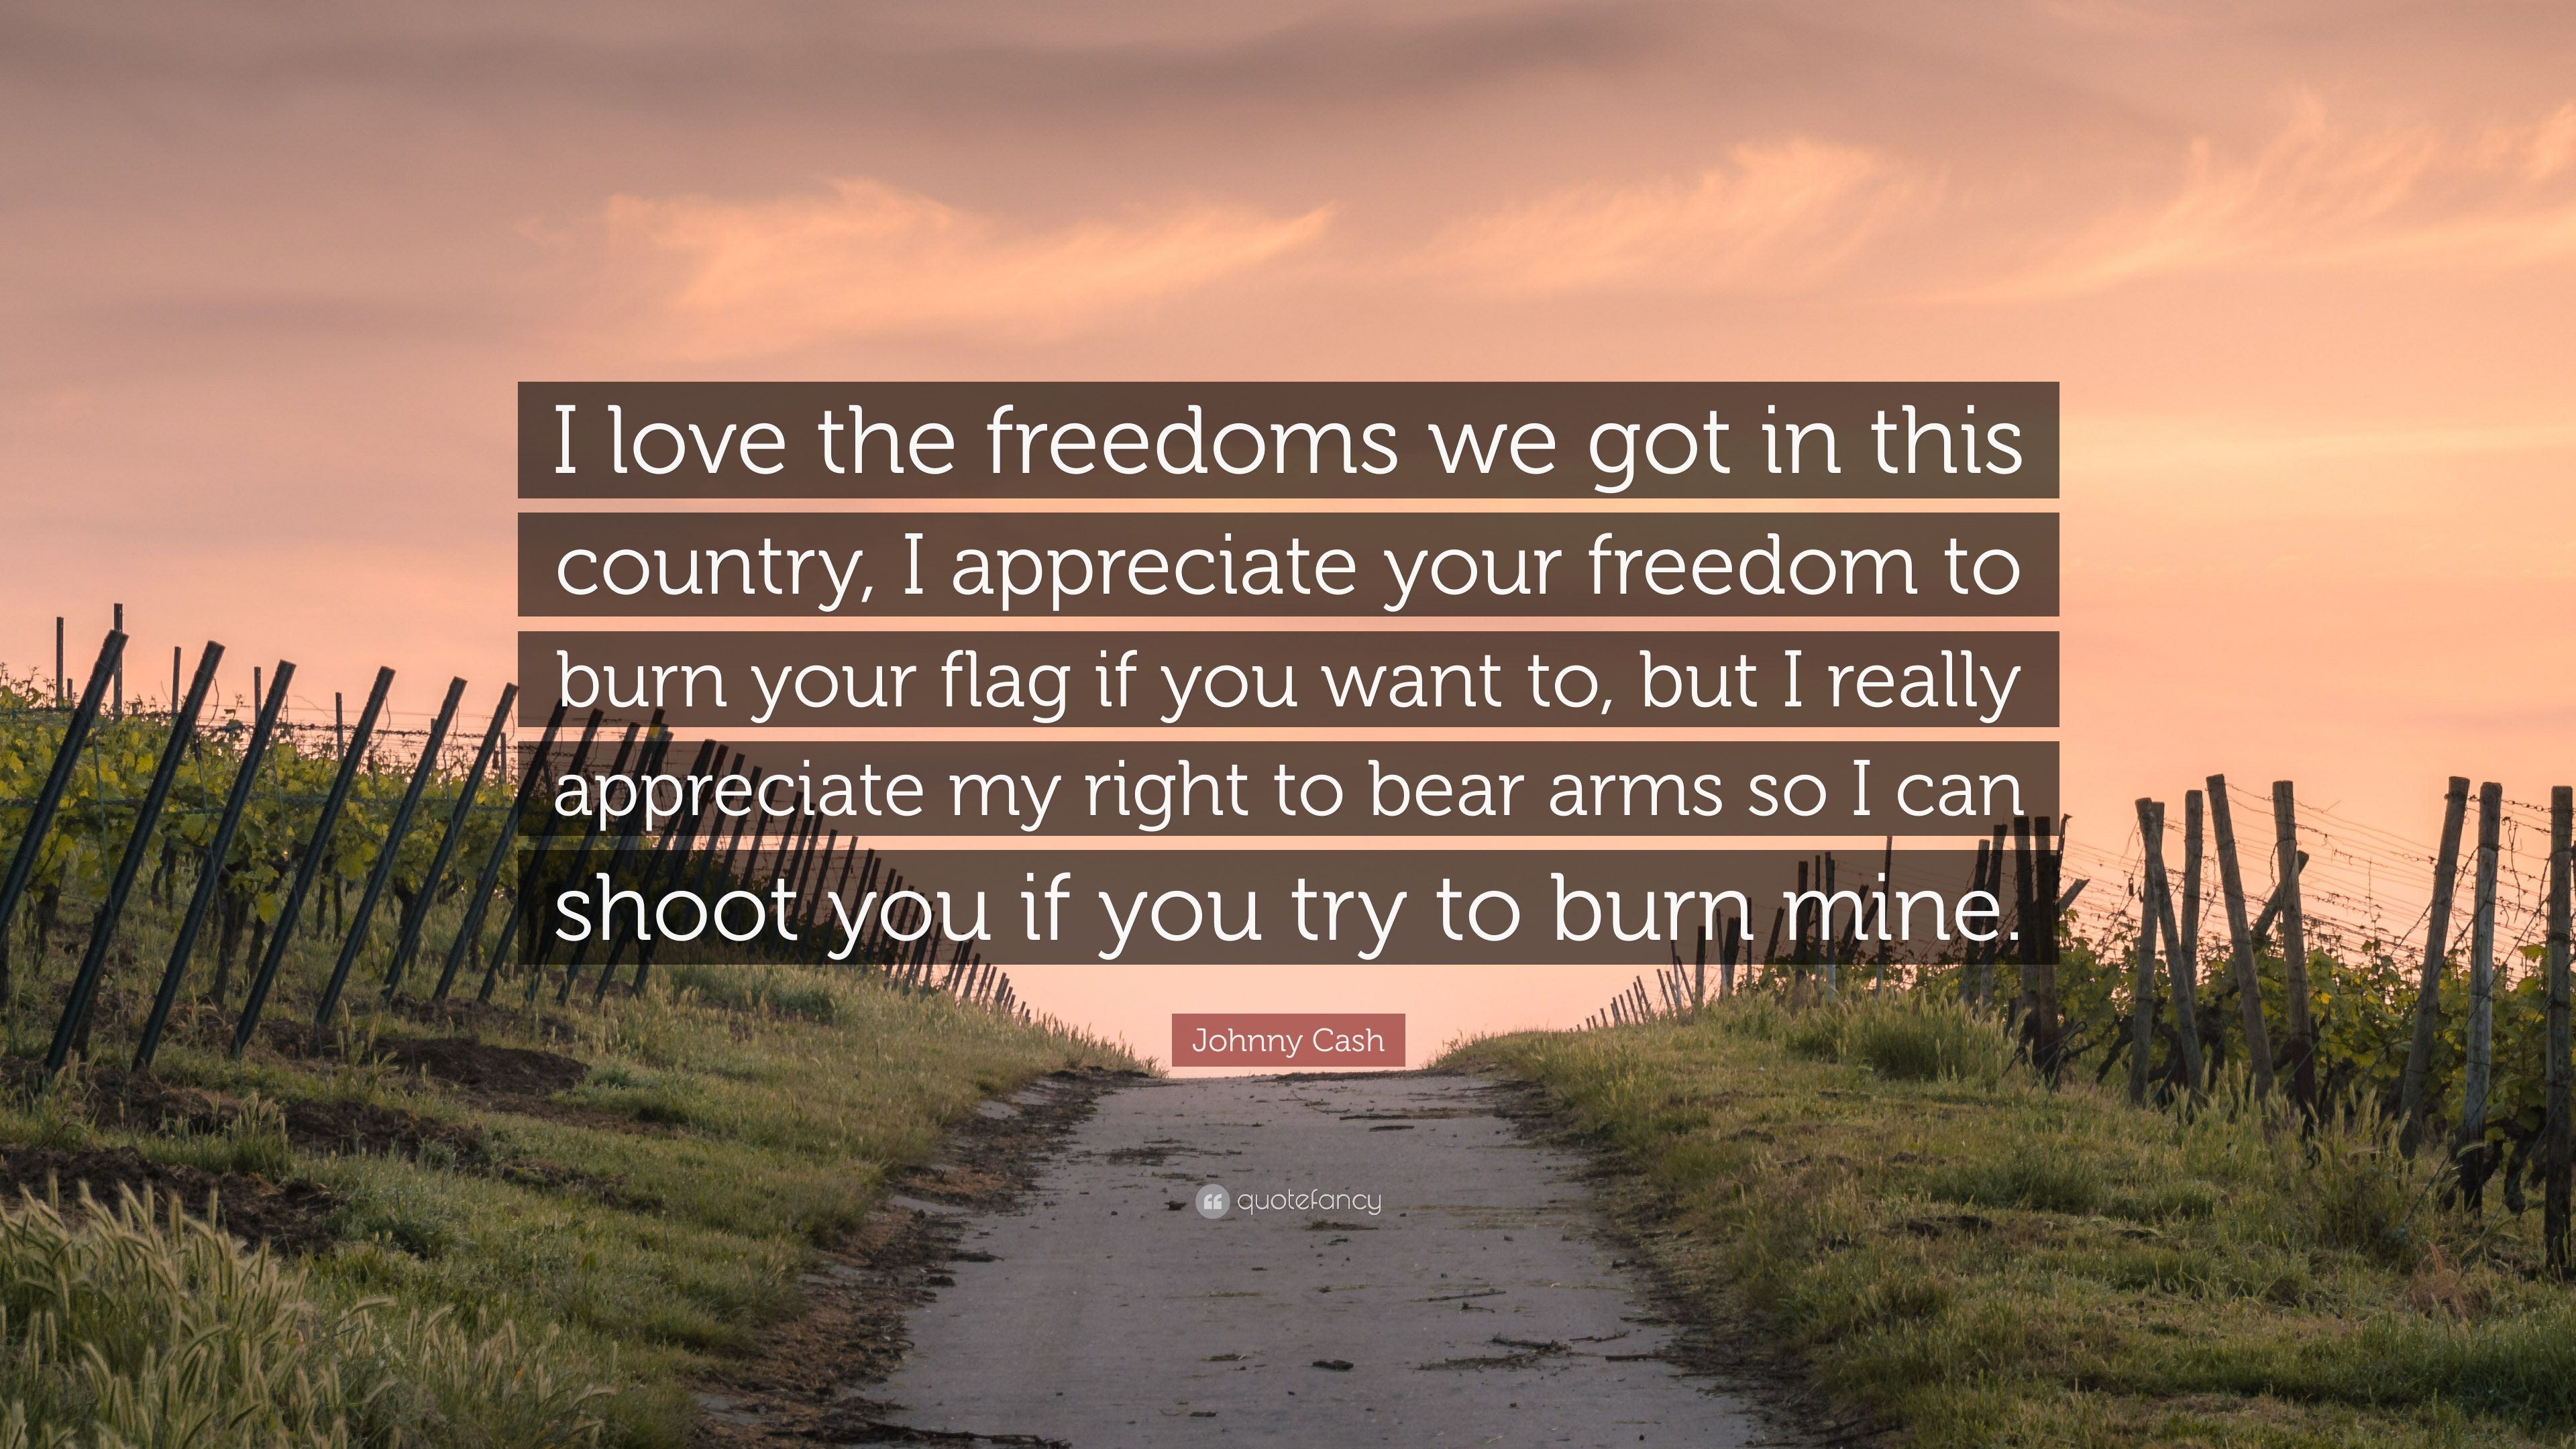 have we really got freedom However, some leaders even go around the law, so does freedom really exist if those bound by law don't have to follow it it's really free will that we're talking about comments encouraged.